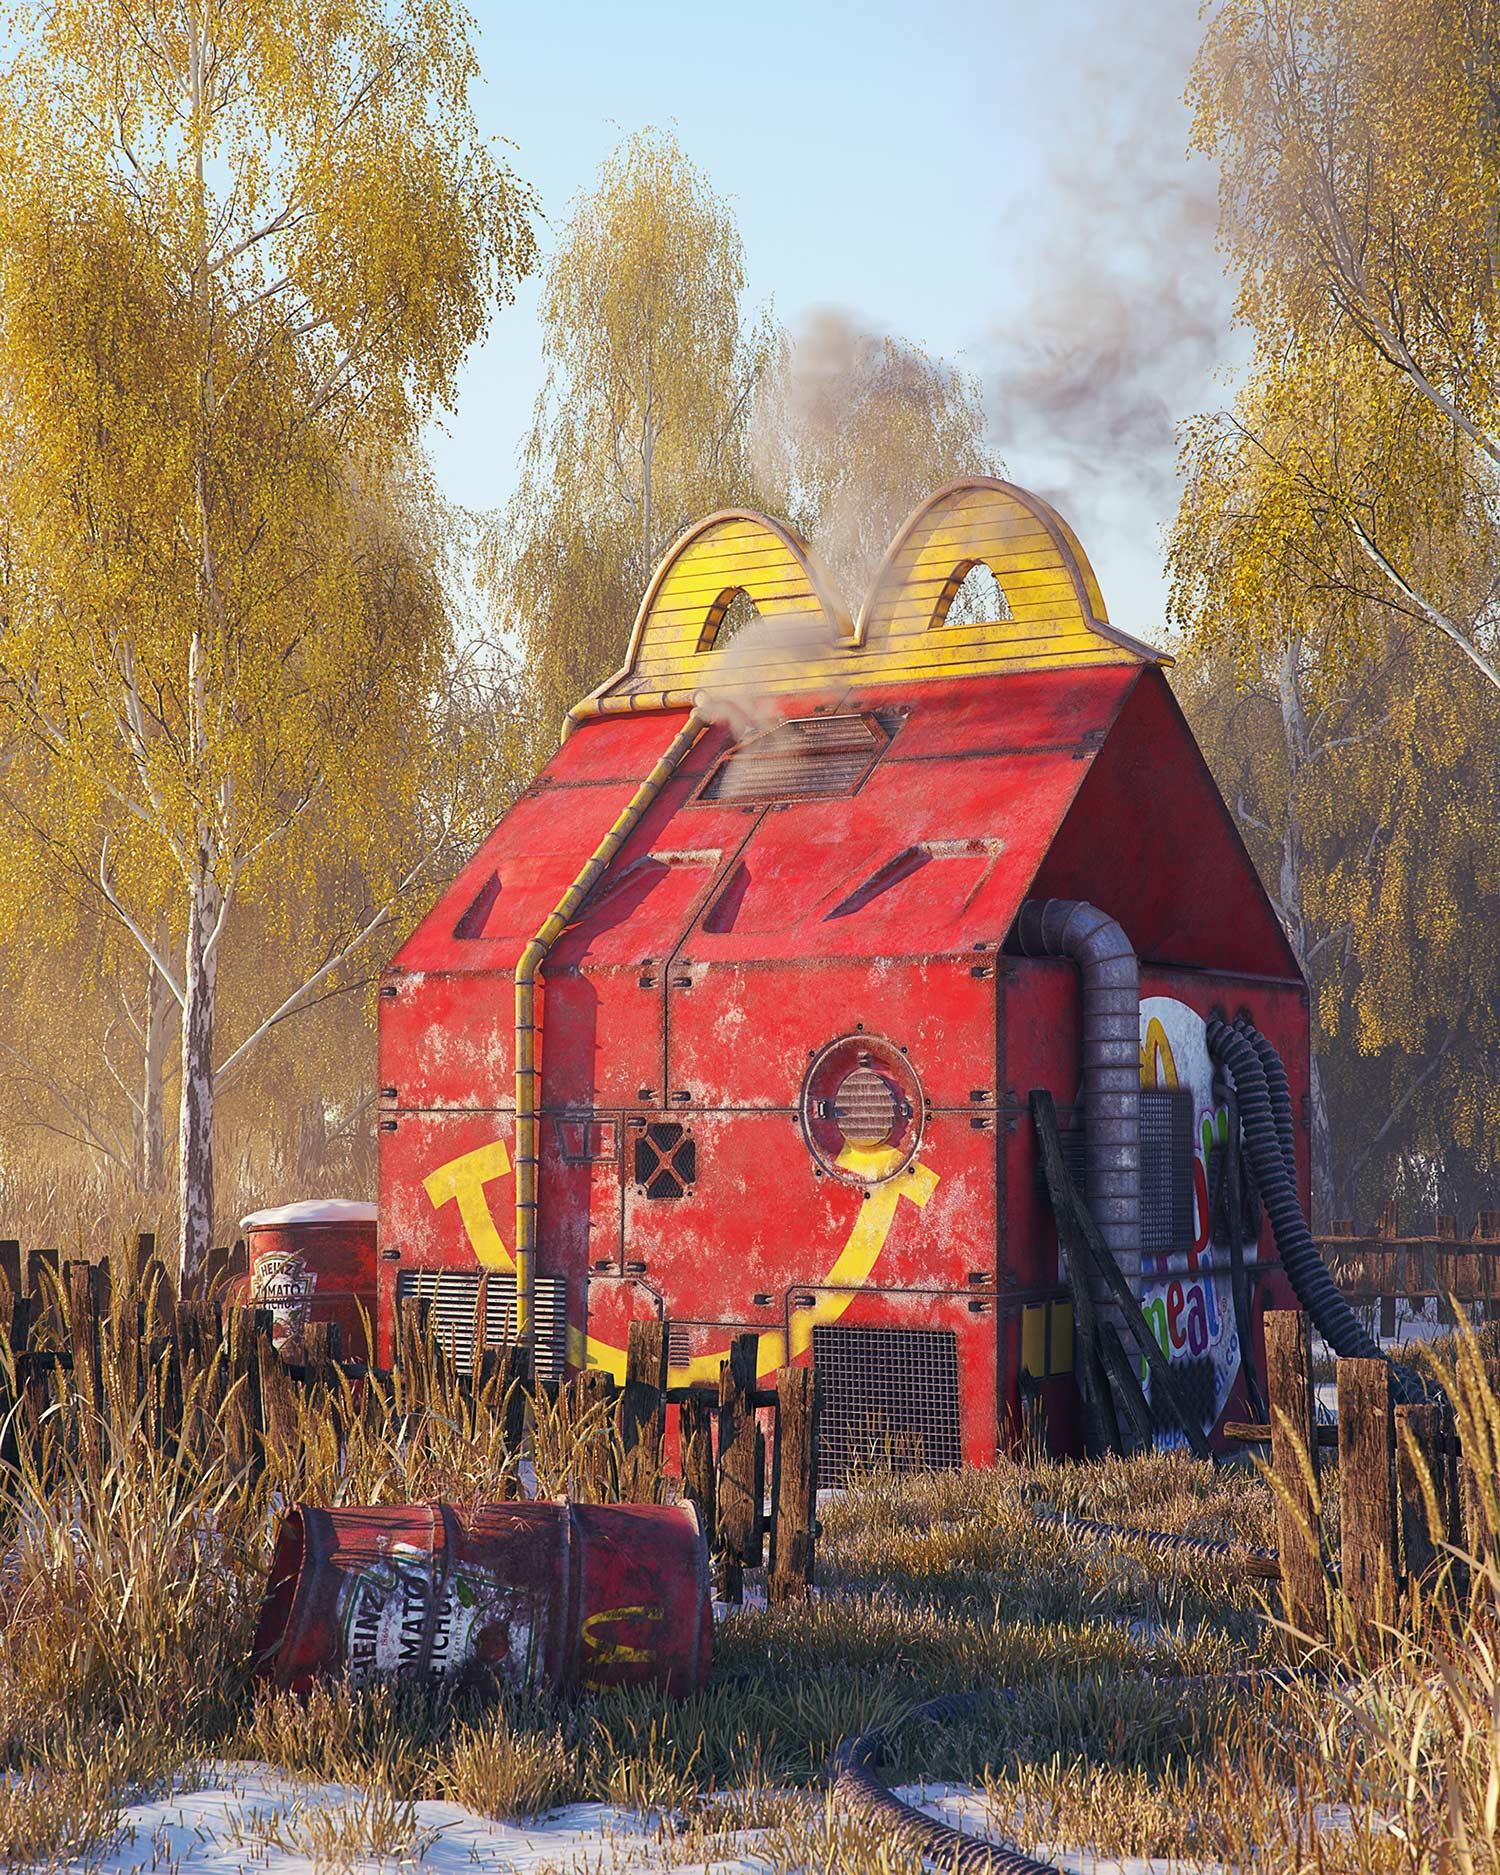 Filip Hodas - Pop culture dystopia - McDonald's Happy Meal